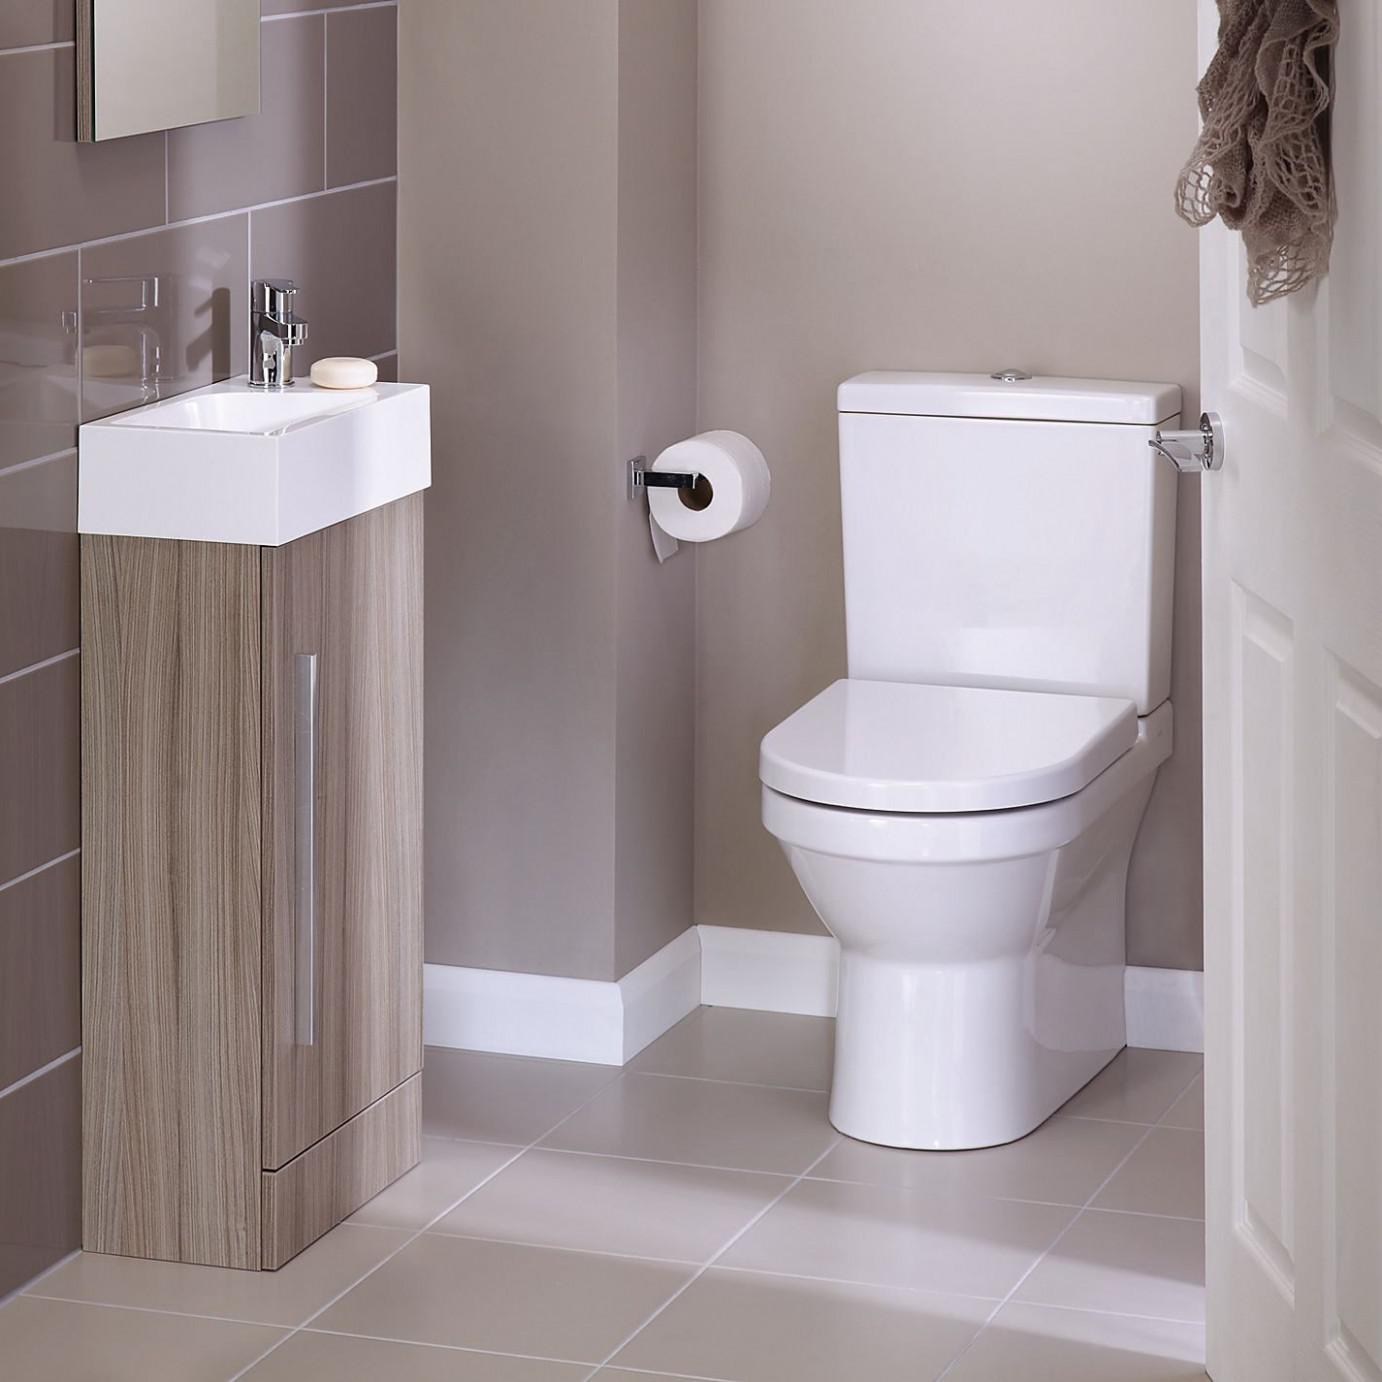 Image of: Small WC Design Ideas